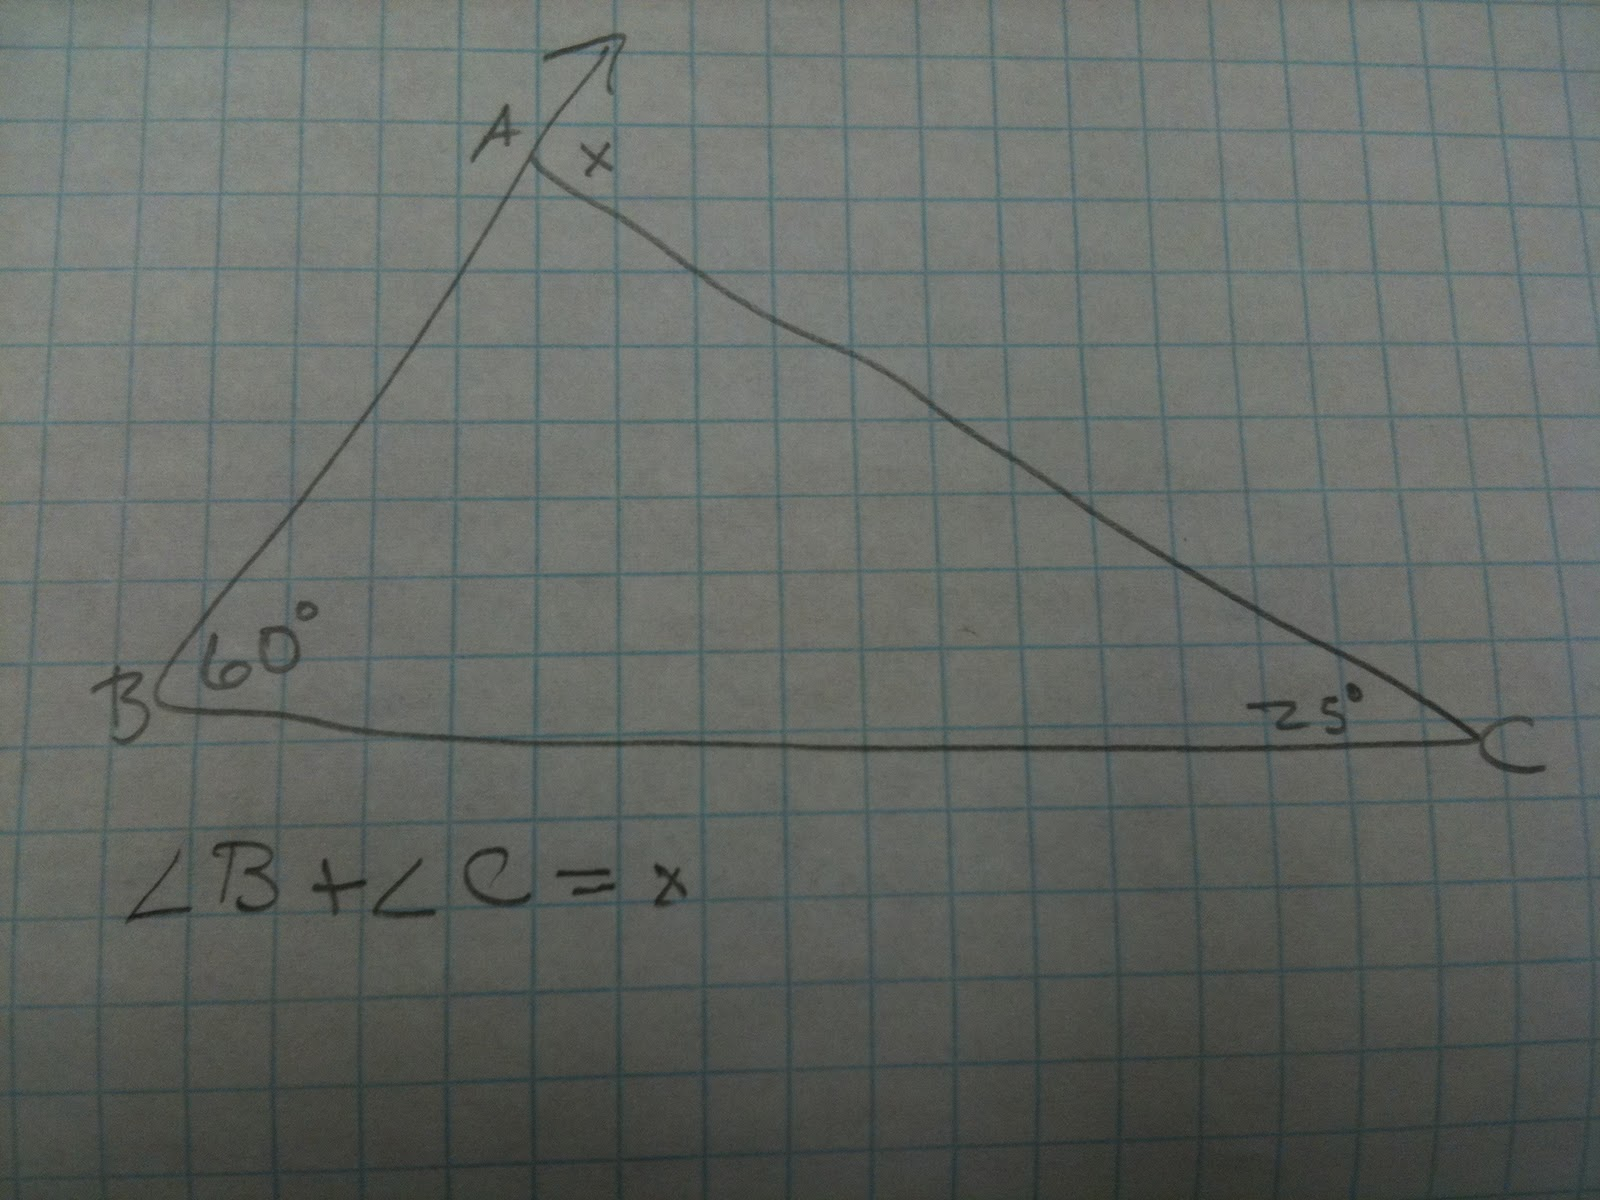 Questions exterior angles What do exterior angles of a triangle add up to